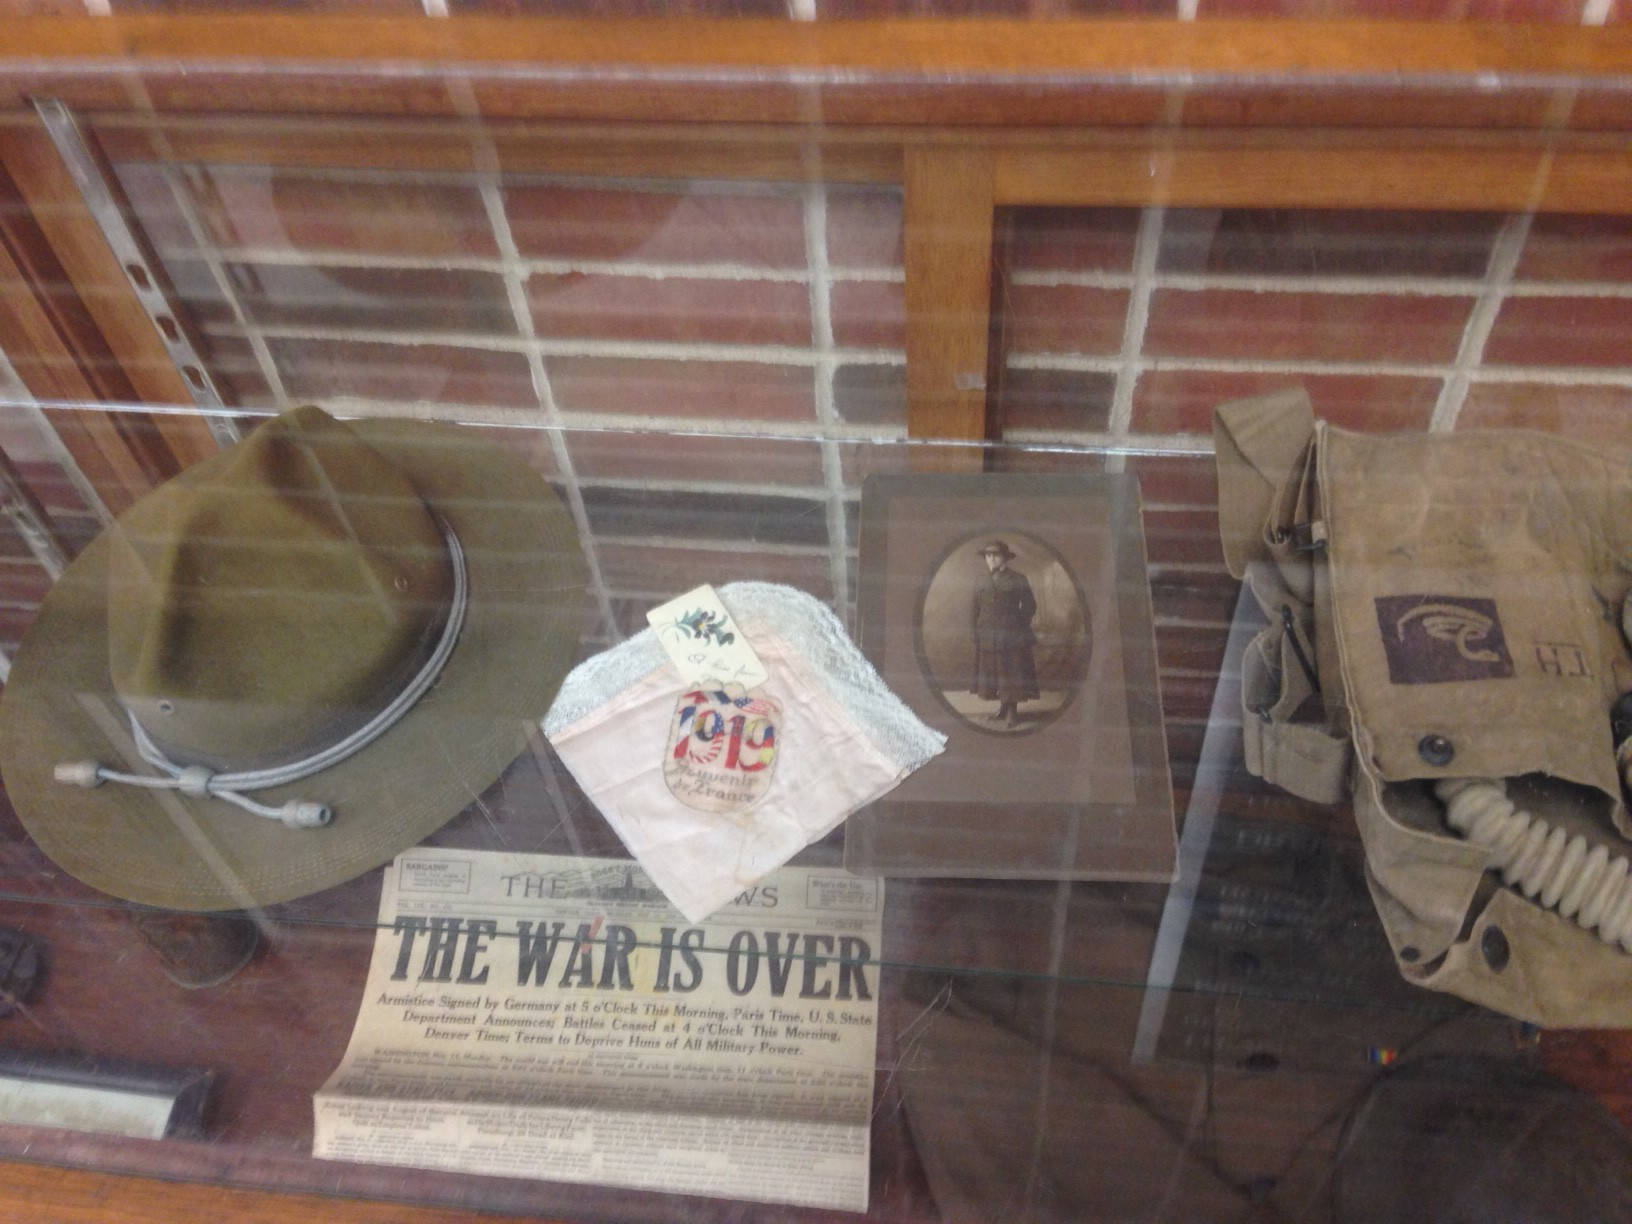 World War I collection on display in Taylor Performing Arts Center